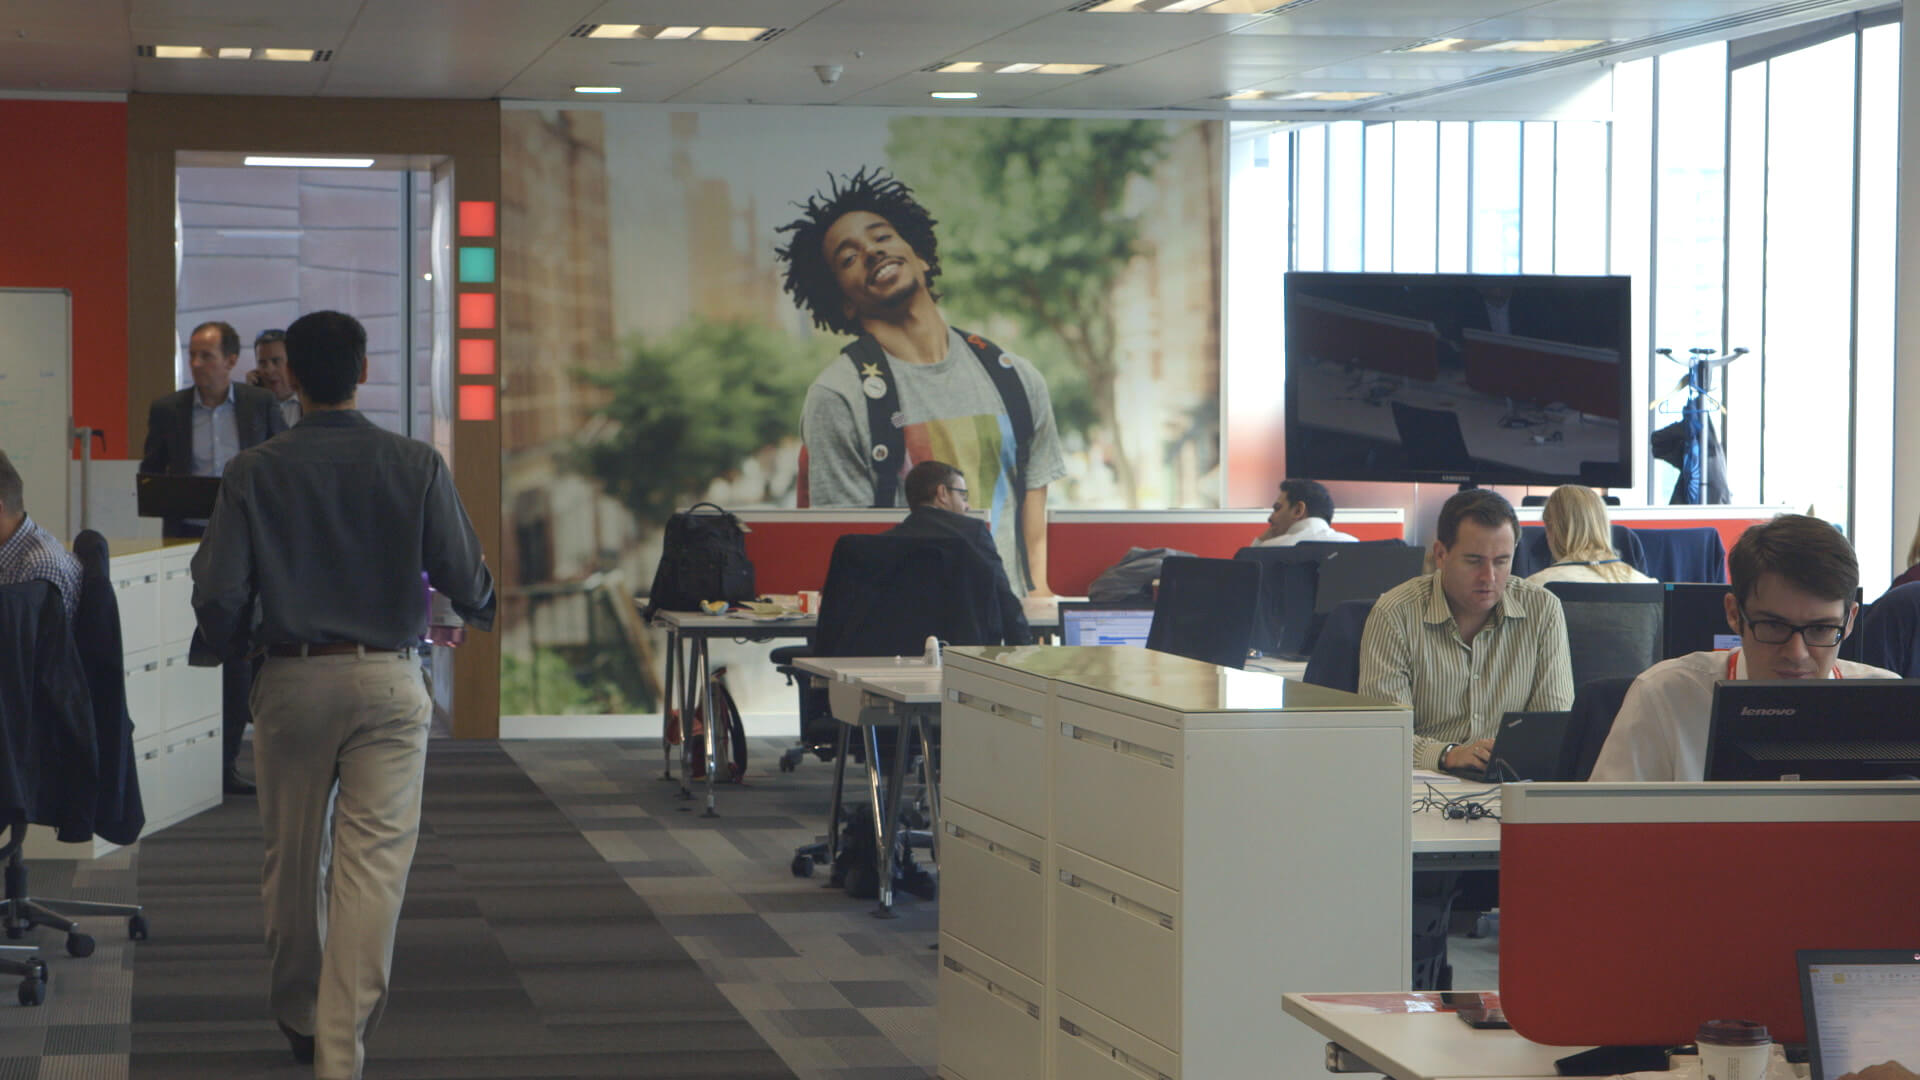 Vodafone offices